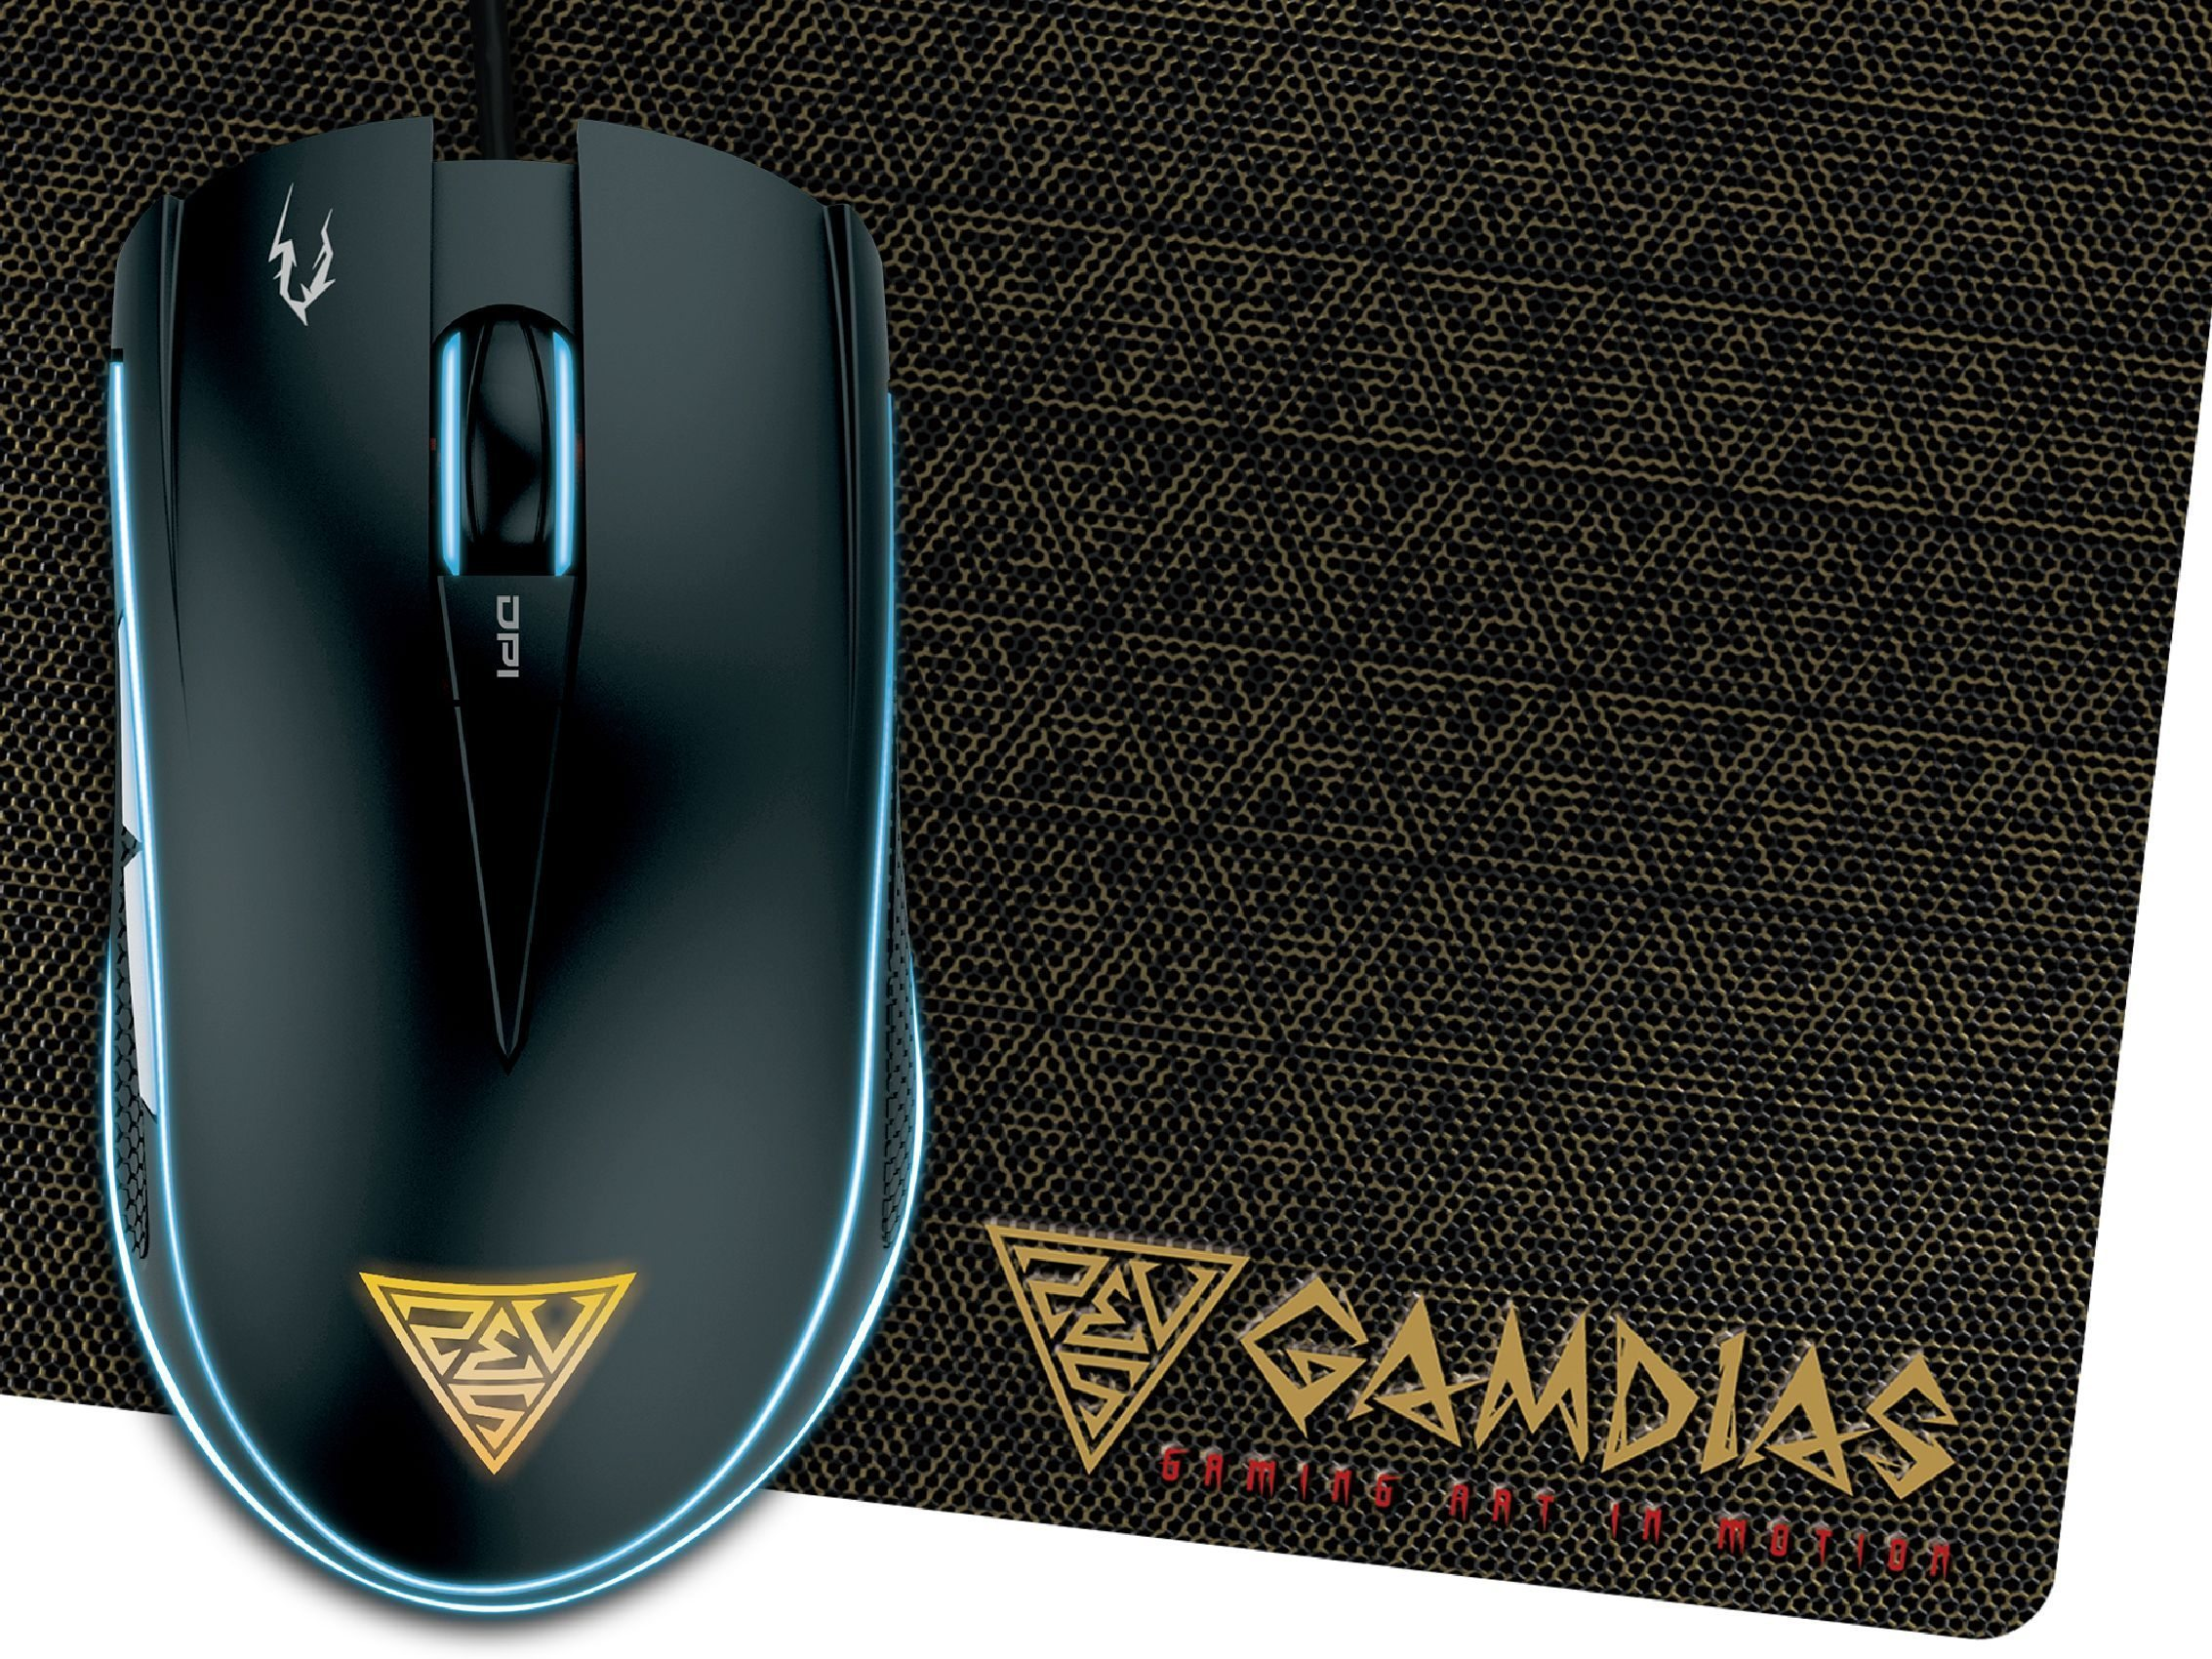 Gaming Mouse - ZEUS E1A + PAD NYX E1 - 4200dpi, backlight